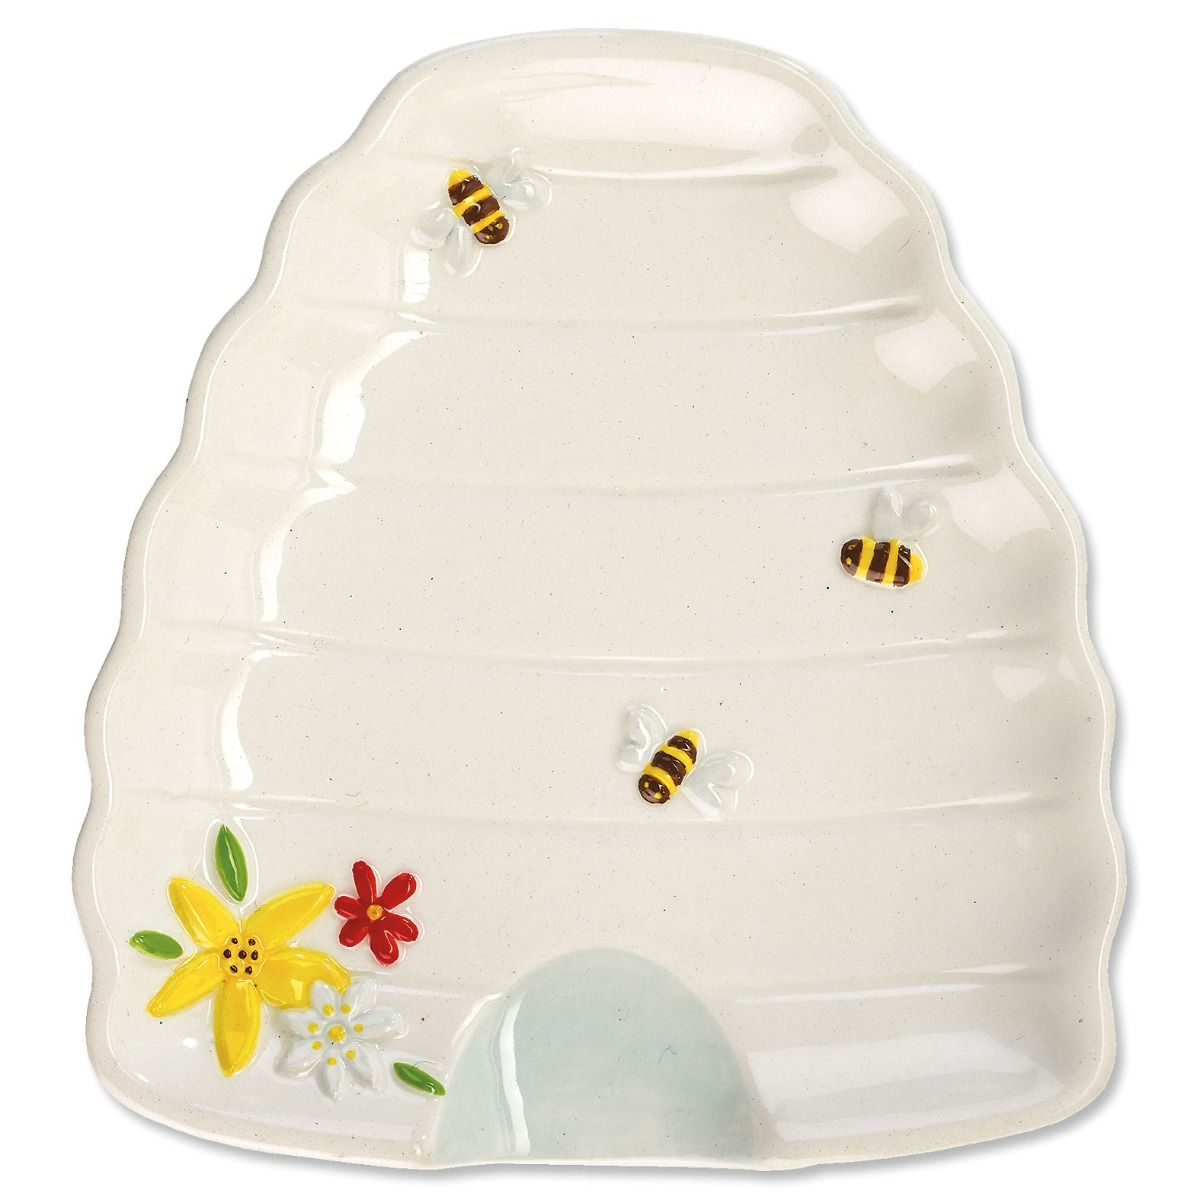 Beehive Spoon Rest